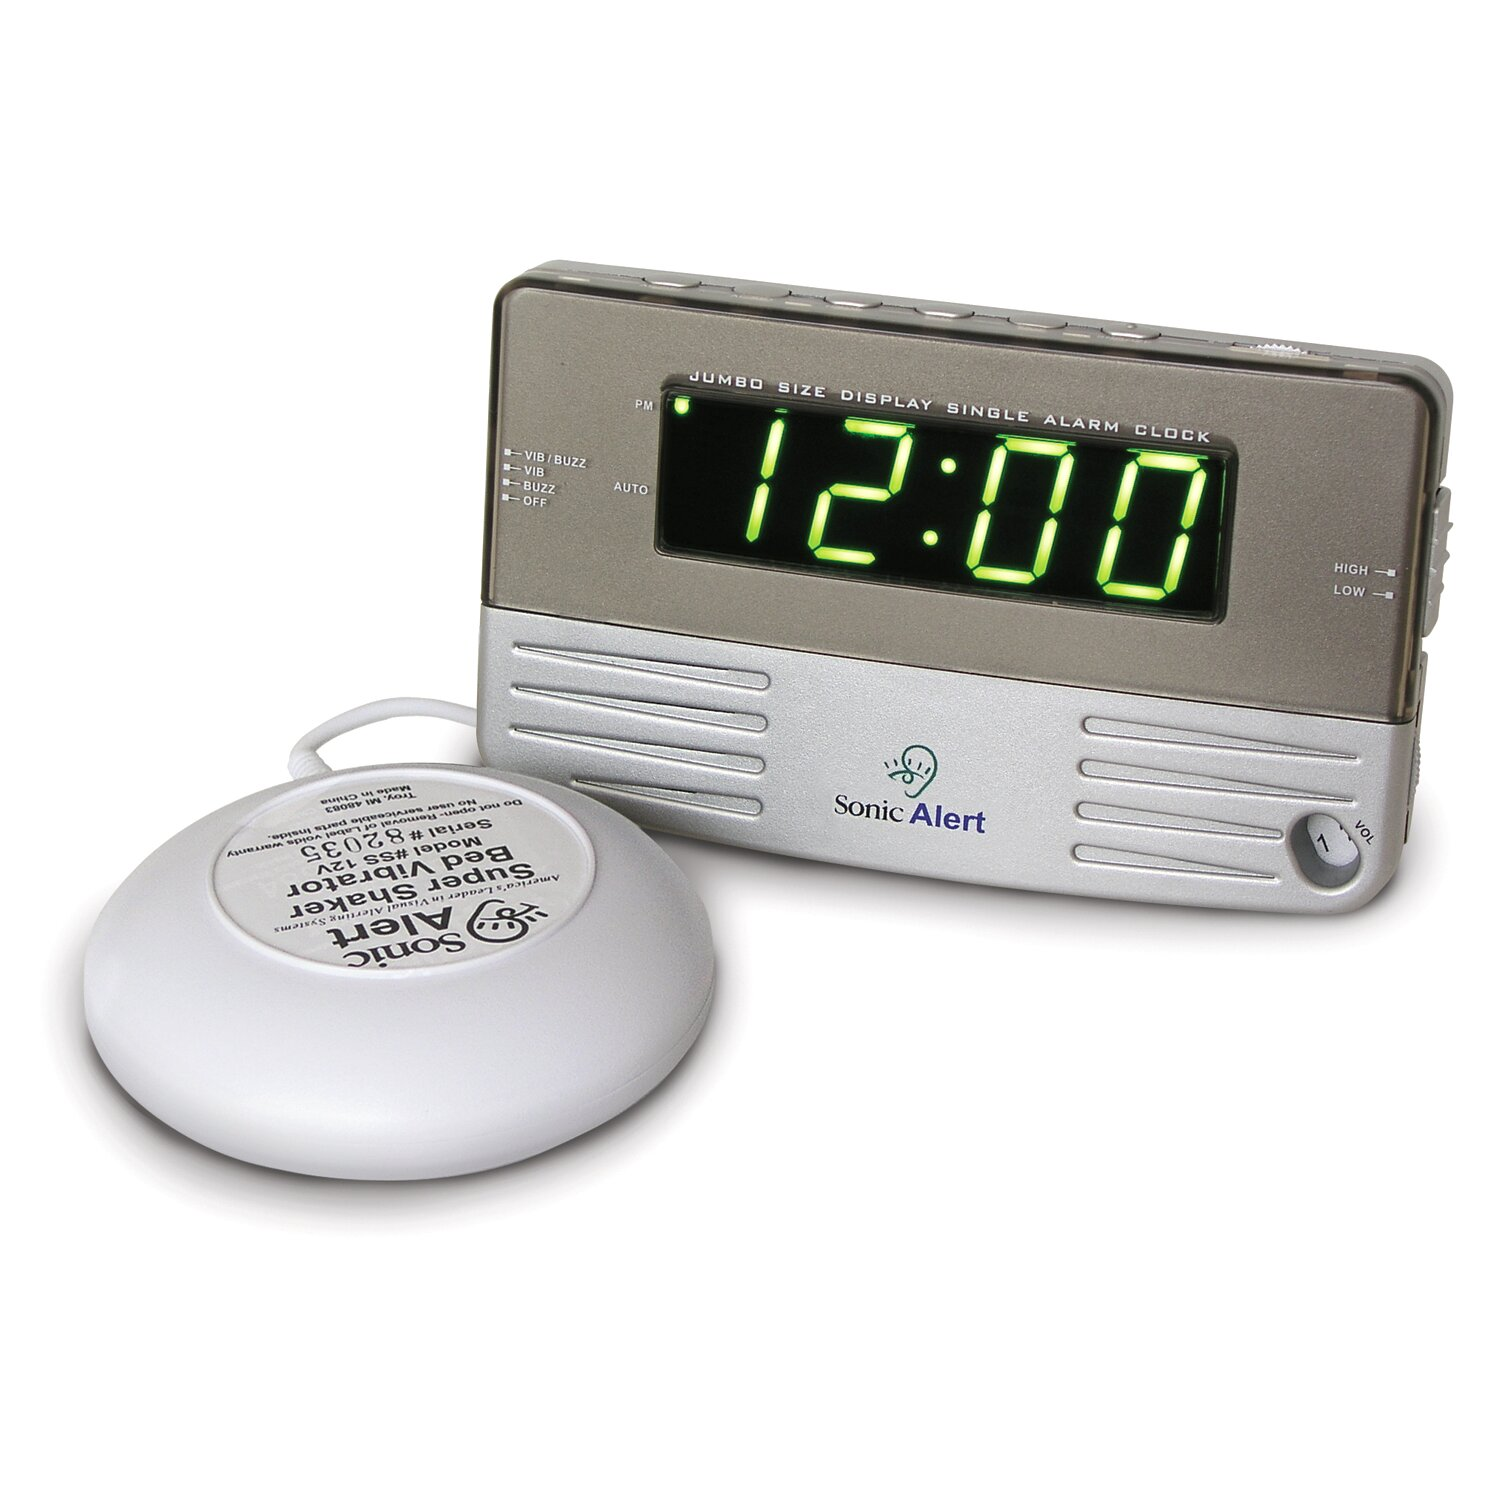 What are some highly rated travel alarm clocks according to customer reviews?